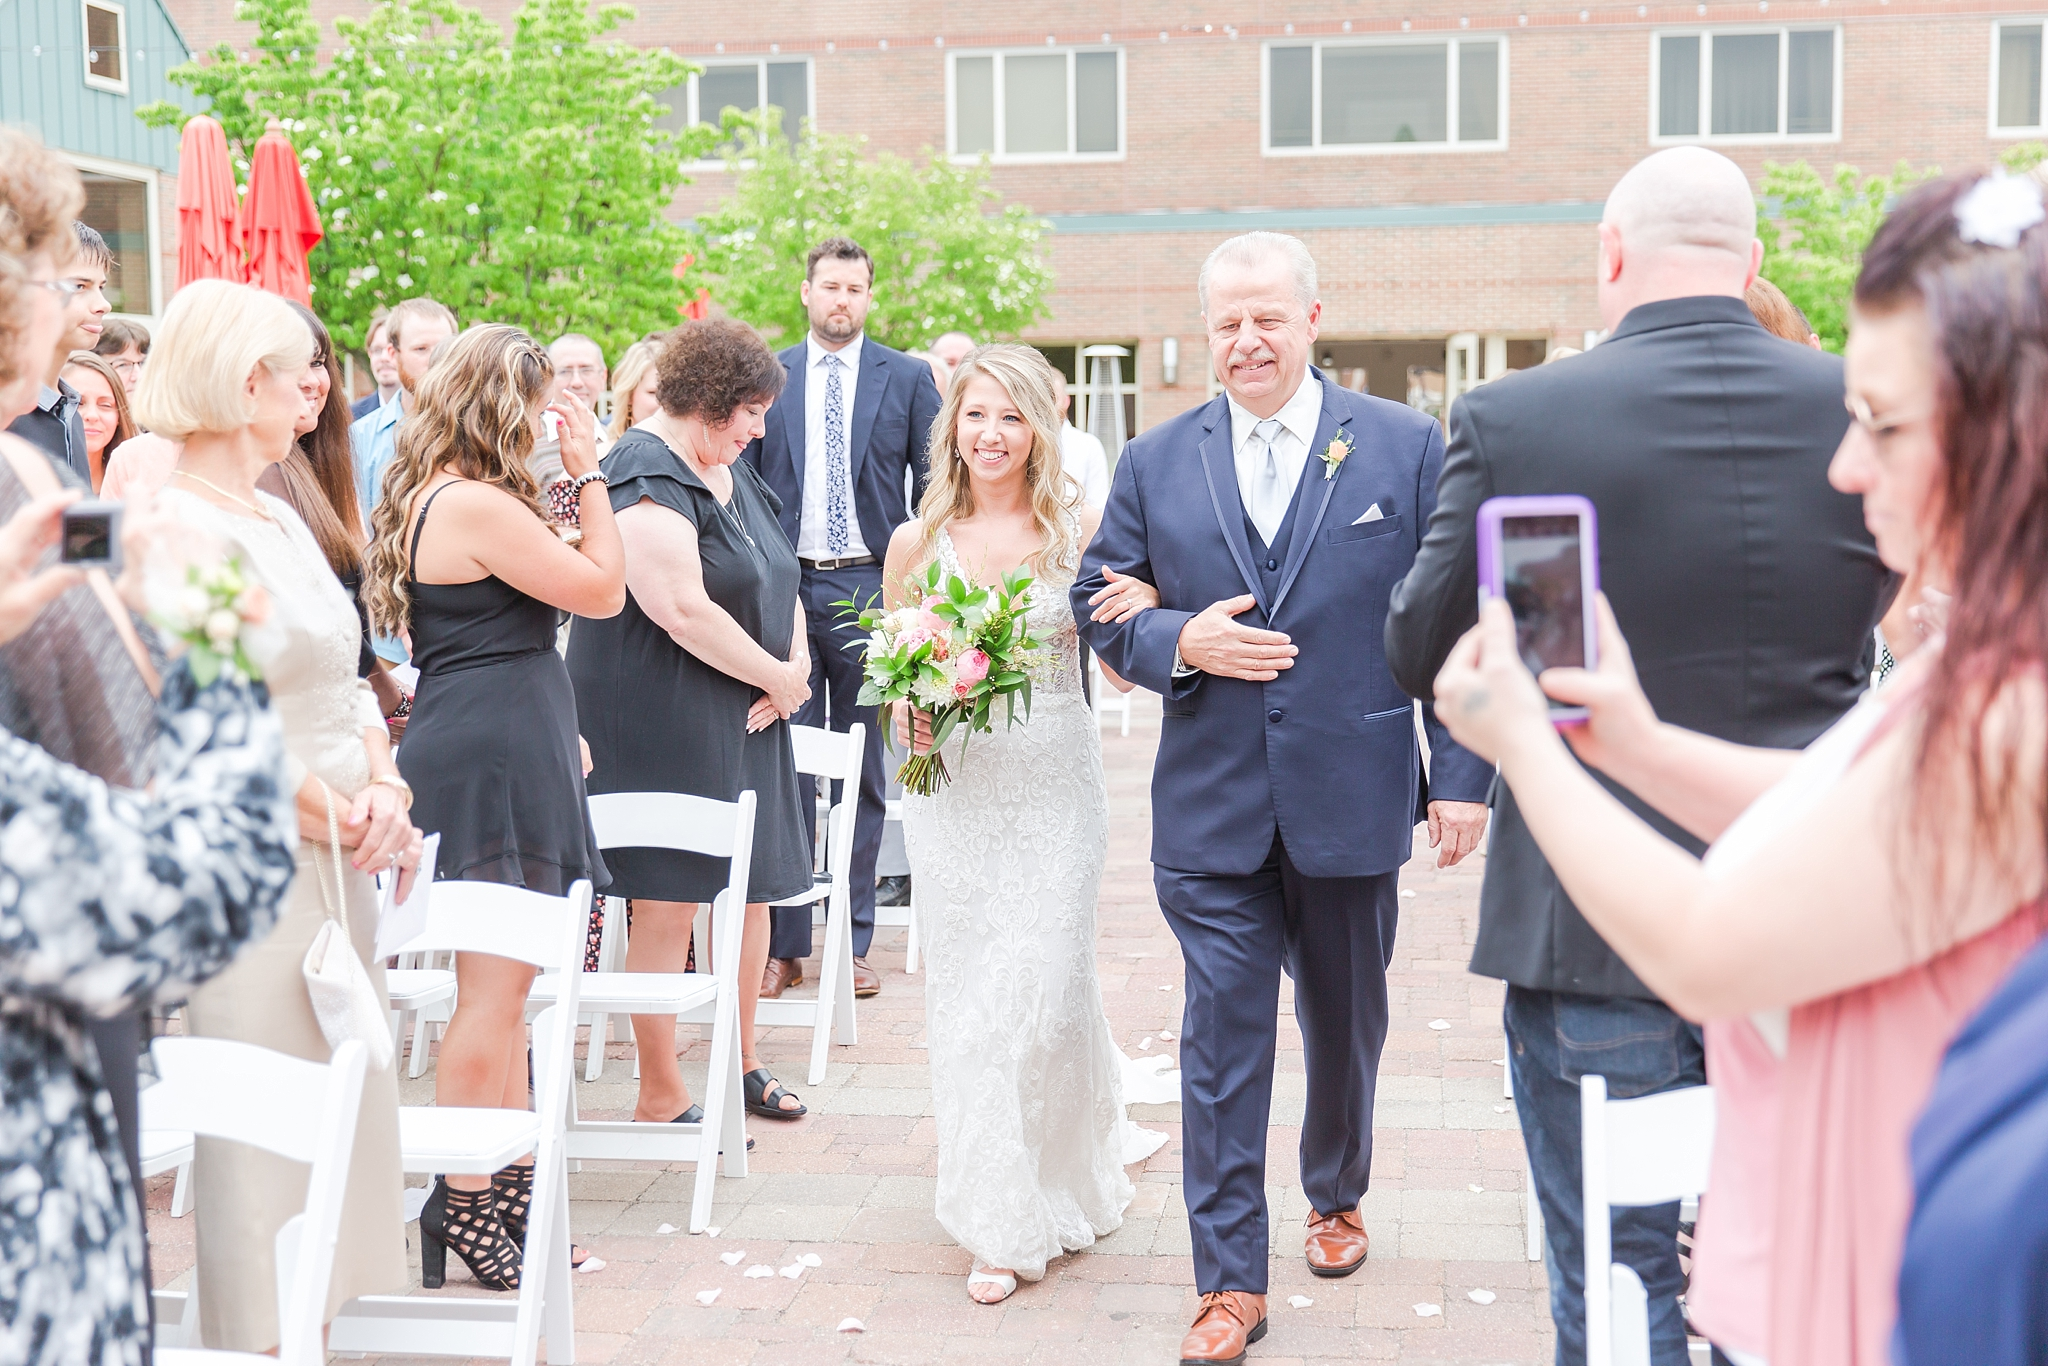 candid-romantic-wedding-photos-at-the-h-hotel-in-midland-michigan-by-courtney-carolyn-photography_0067.jpg